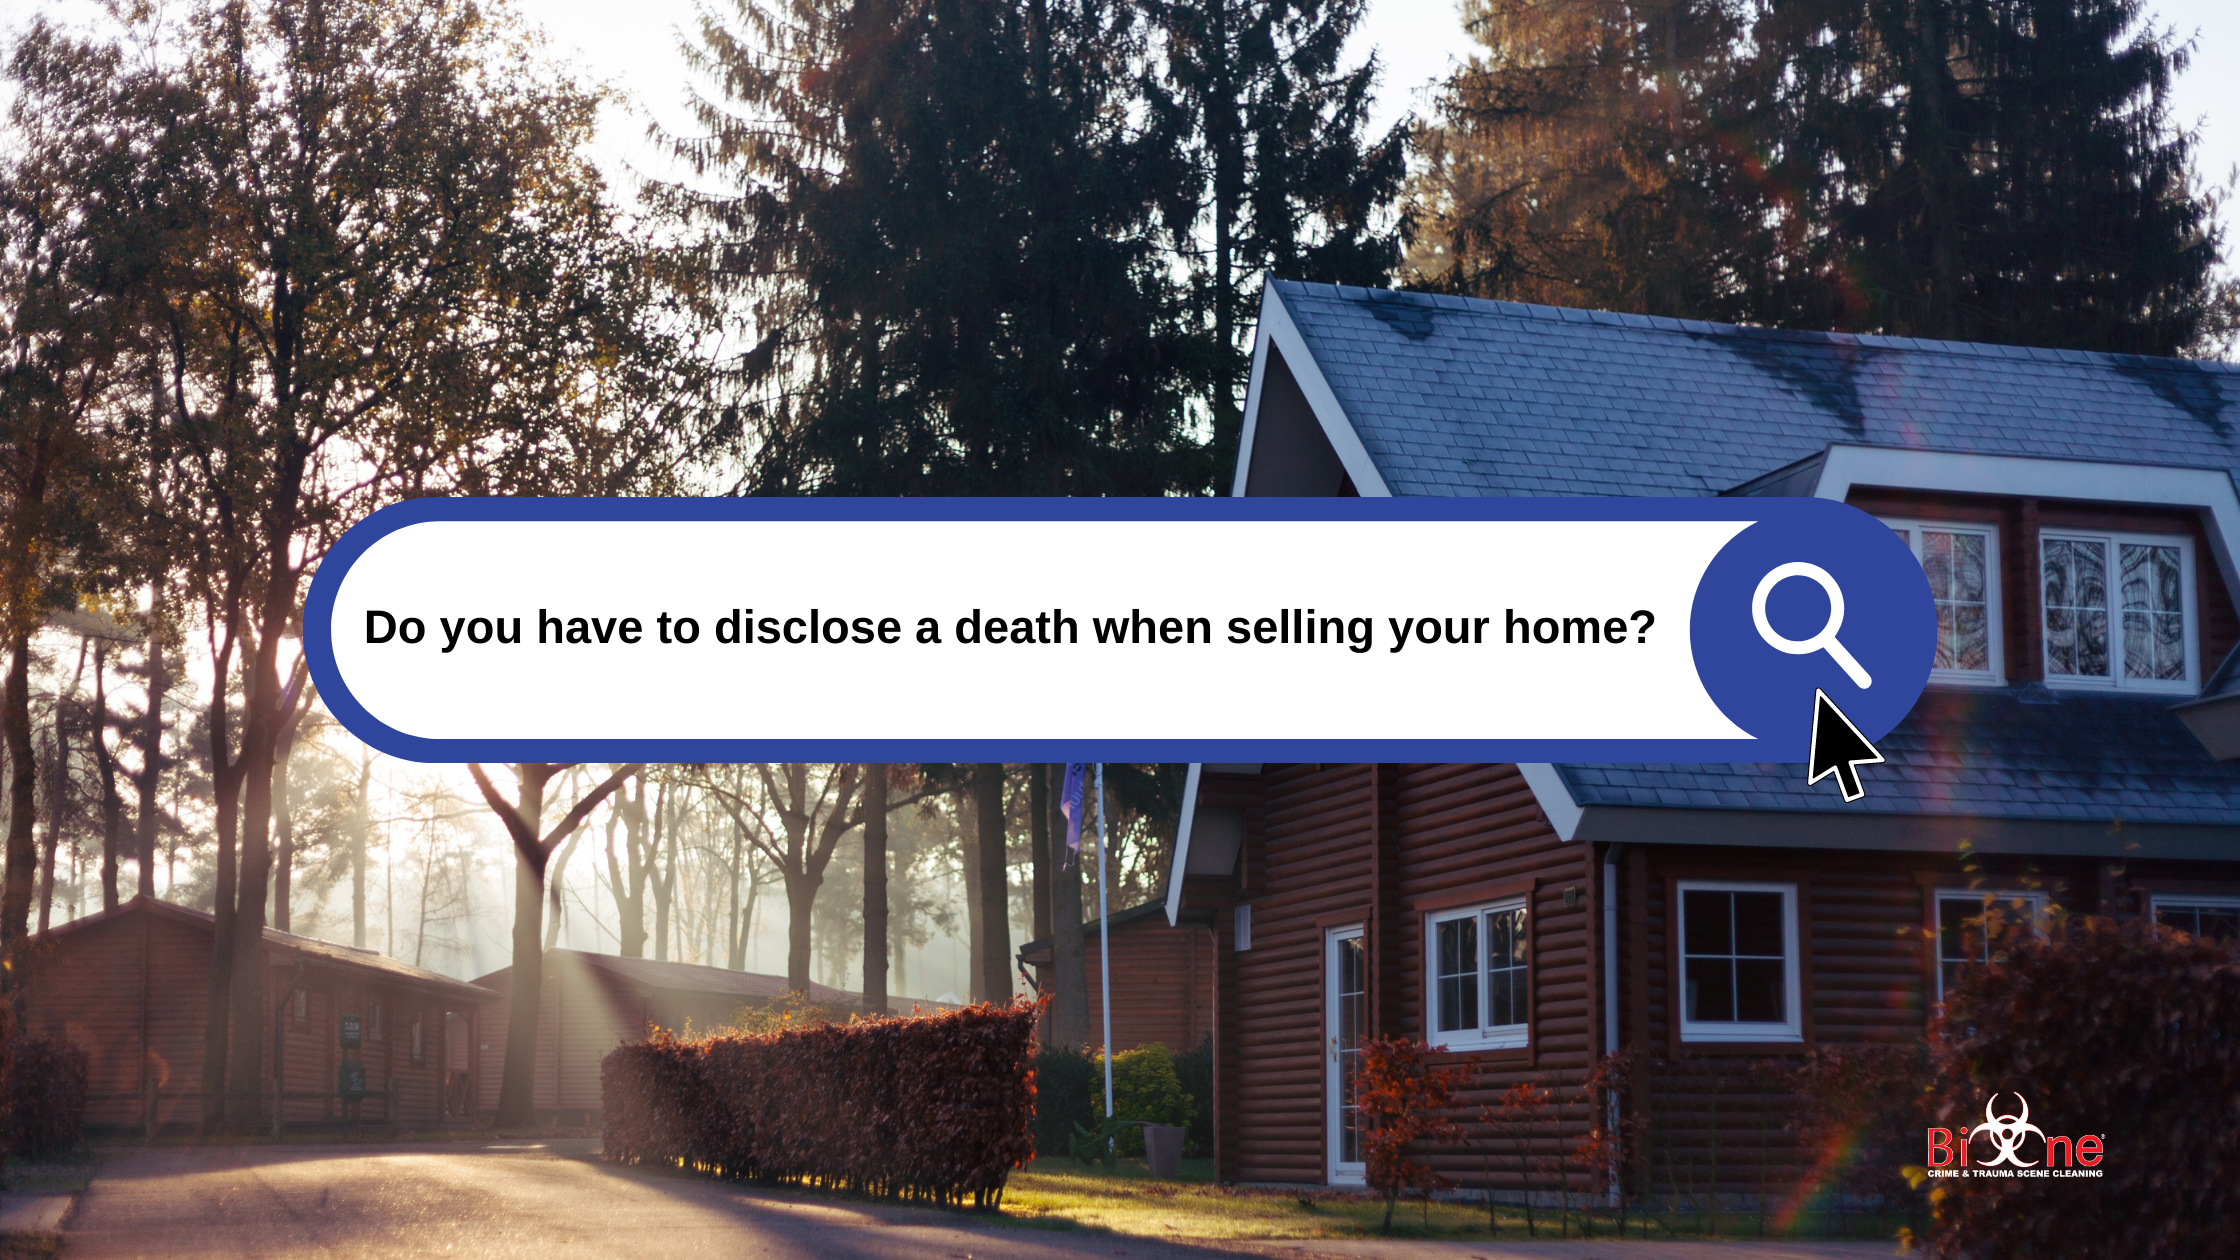 Disclosing death when selling a home